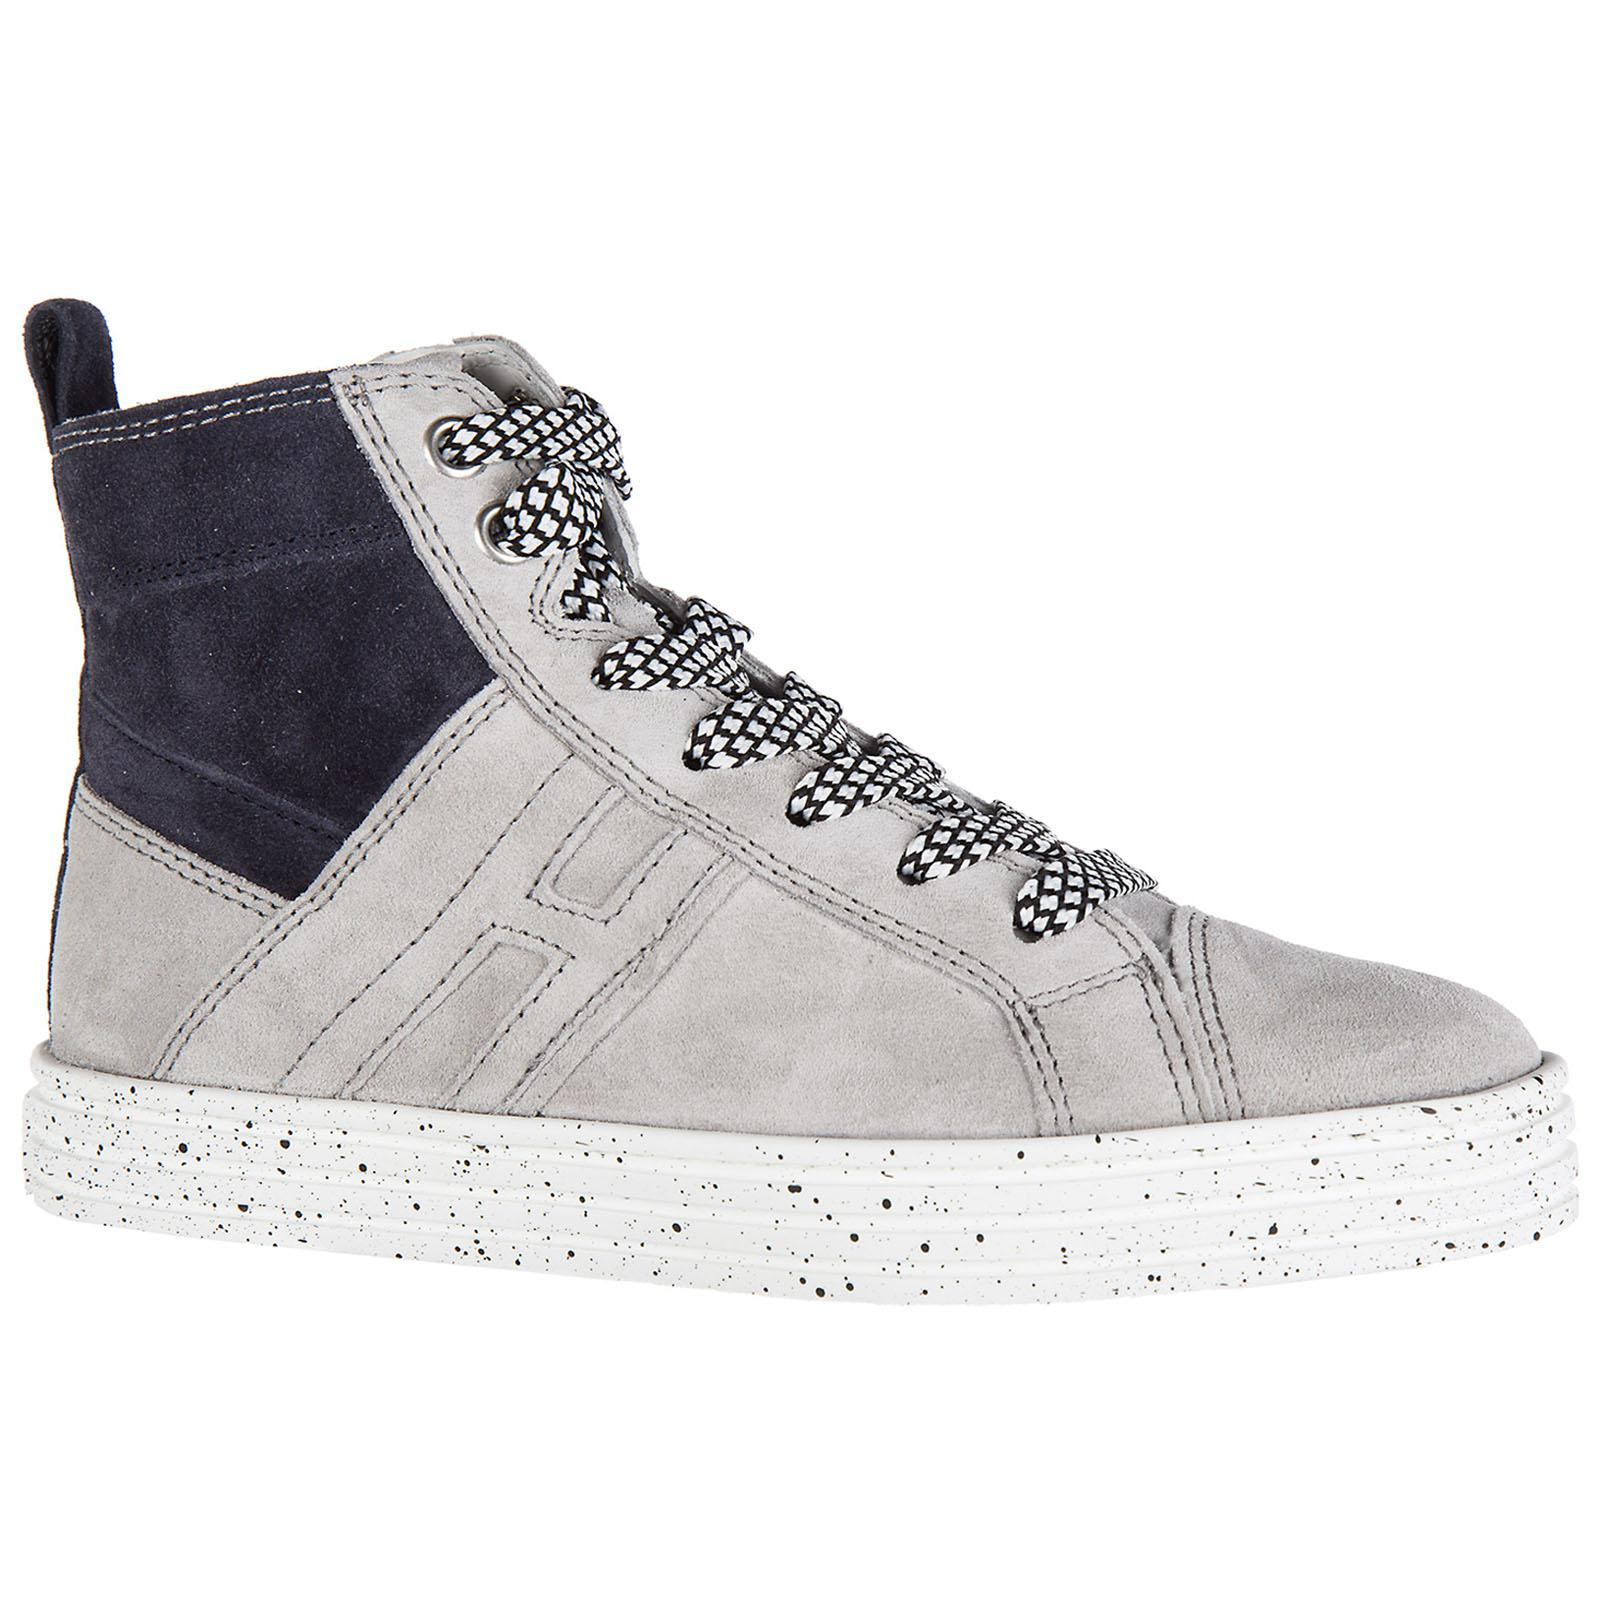 Hogan Rebel Boys Shoes Baby Child Sneakers Alte Camoscio R141 Mid ... f39d9f531bc